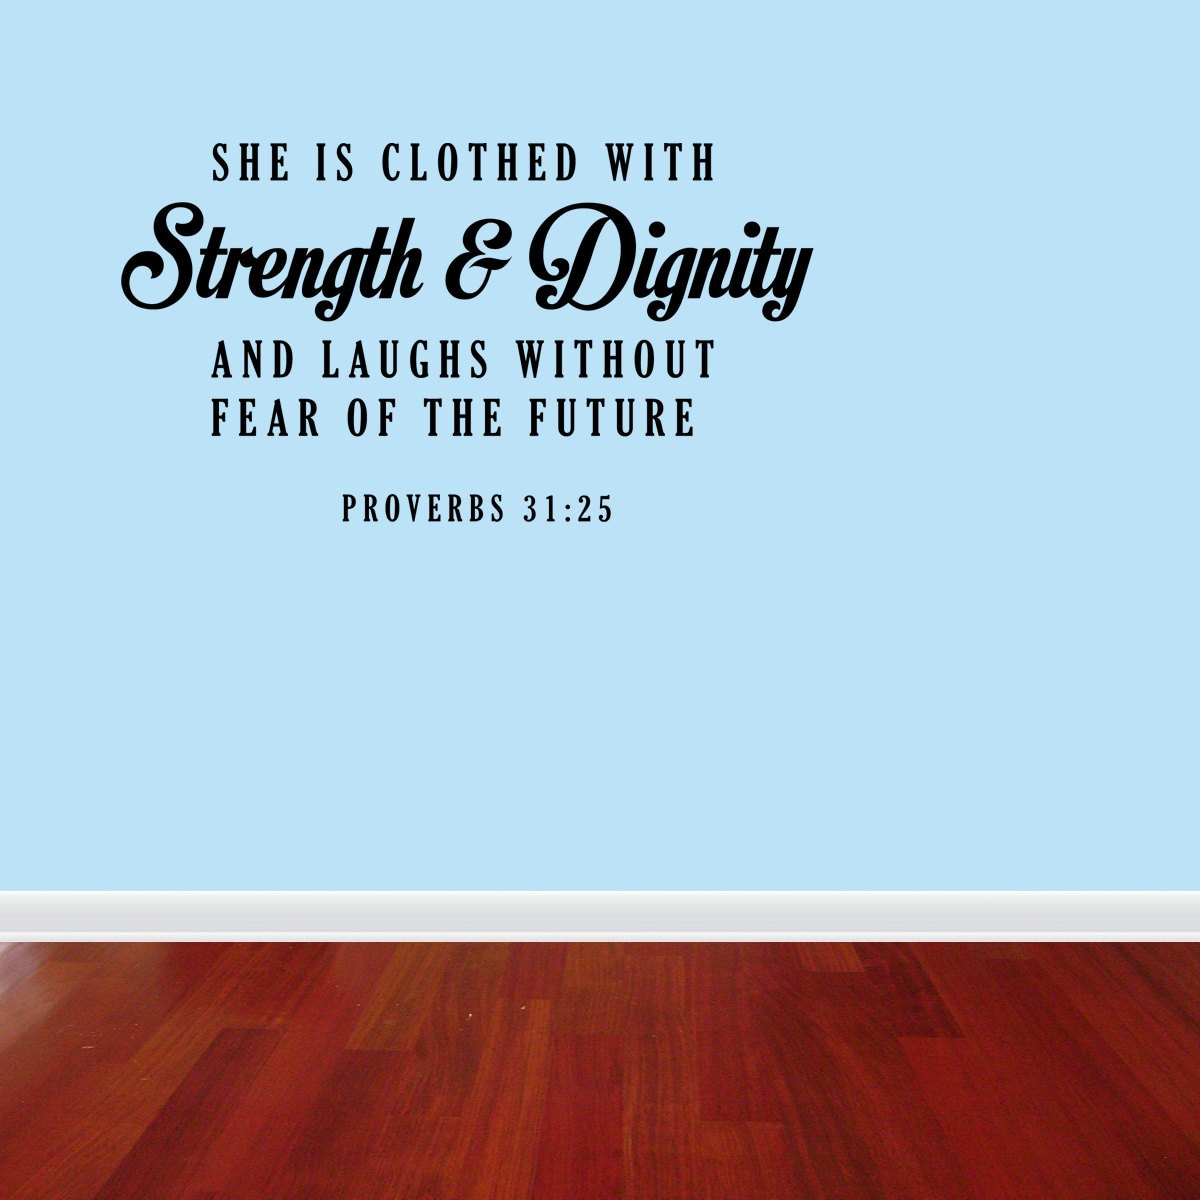 Future She Laughs Without Fear Of Her: She Is Clothed With Strength Proverbs 31:25 Bible Wall Decal